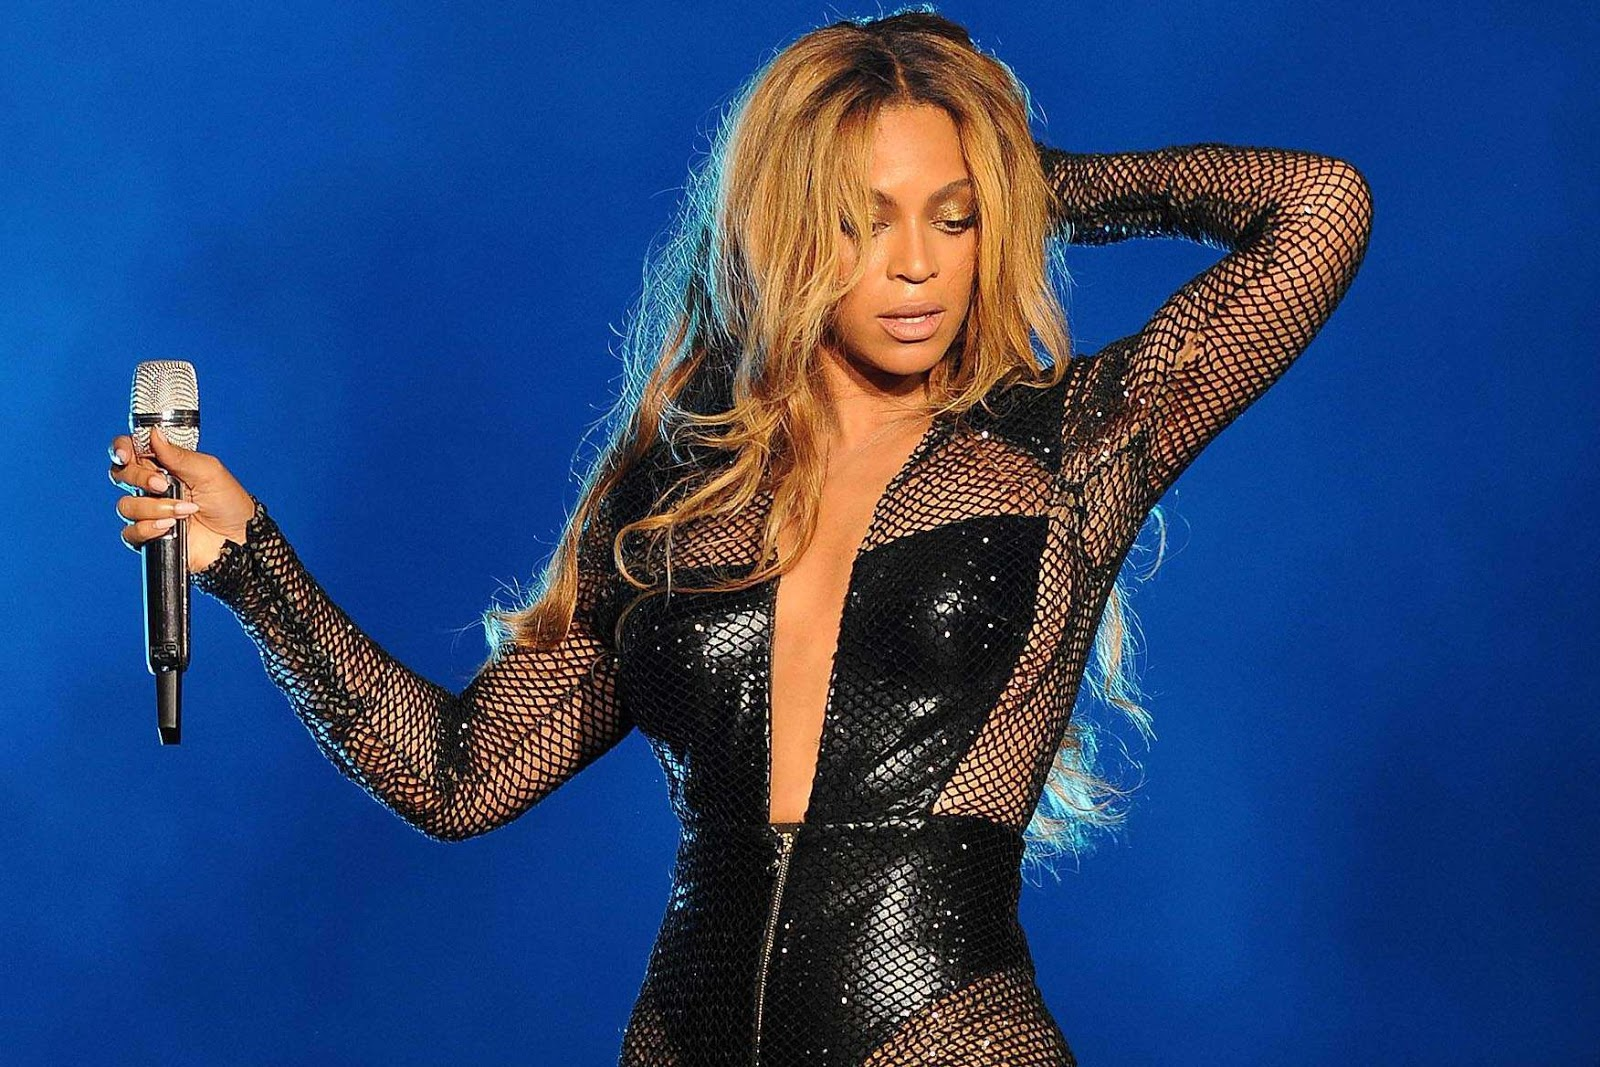 Hollywod Beyonce Hot Hd Wallpaper , She Is One Of The -5149